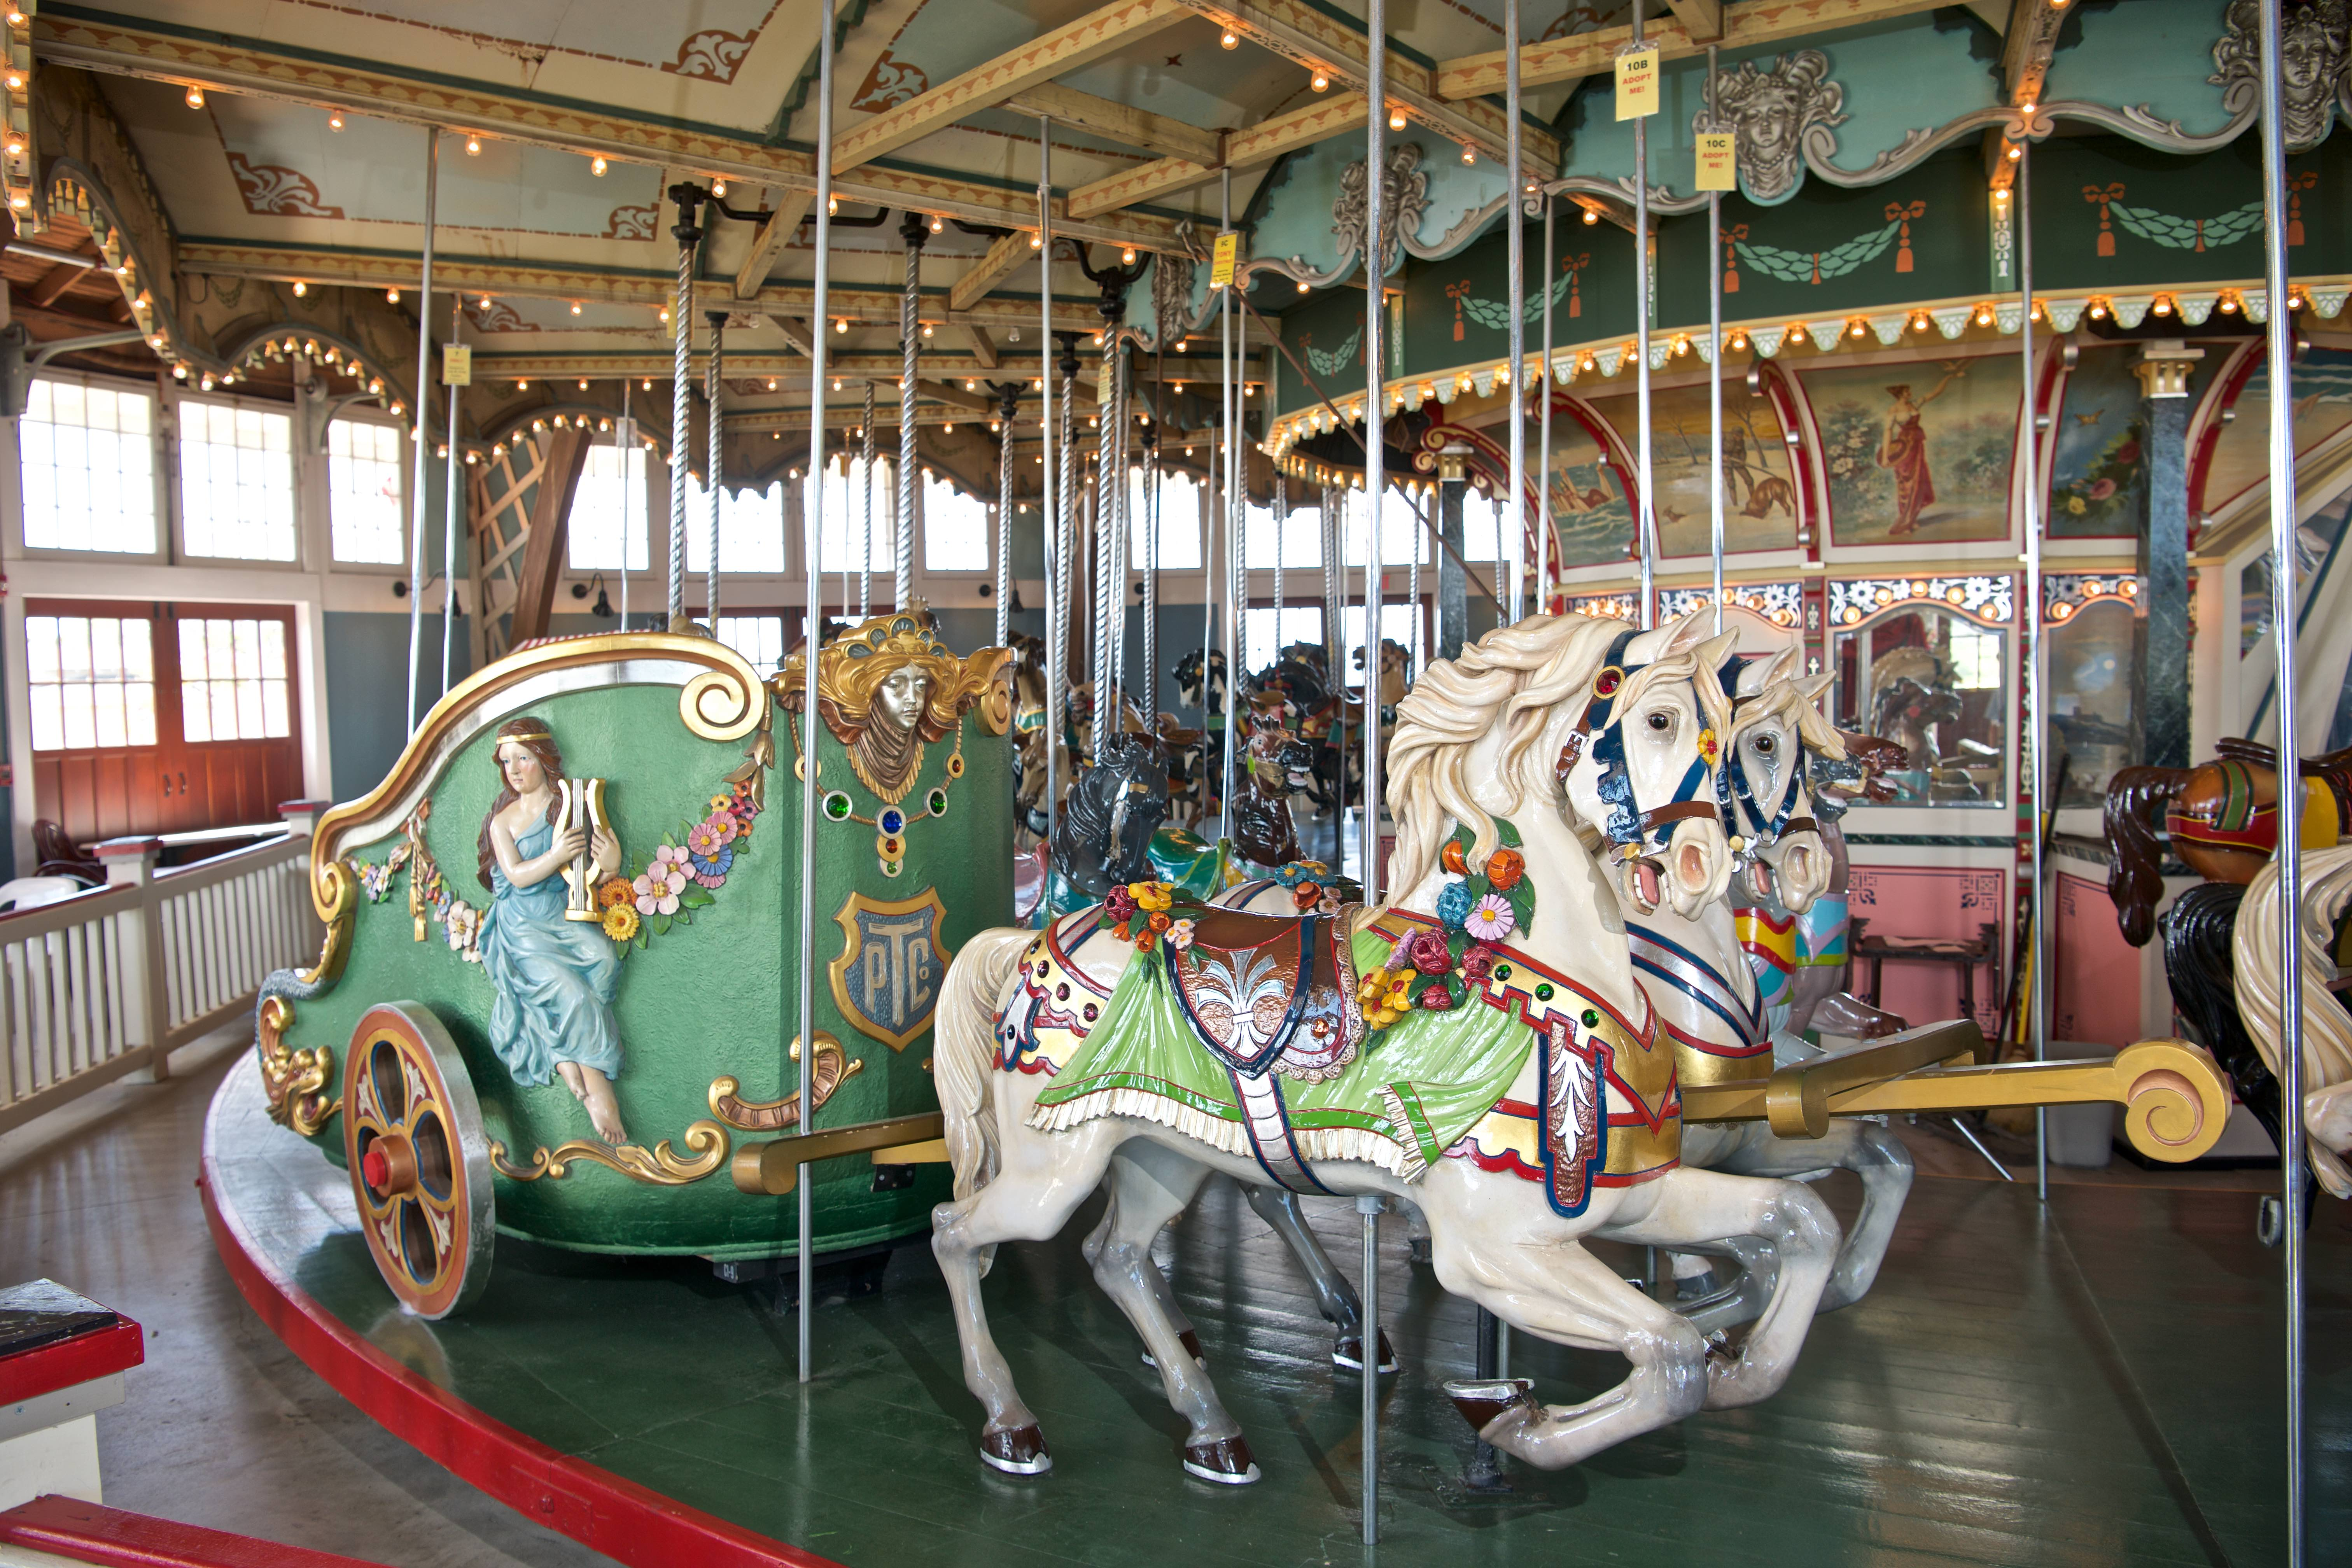 Paragon Carousel will open for the season this weekend (but